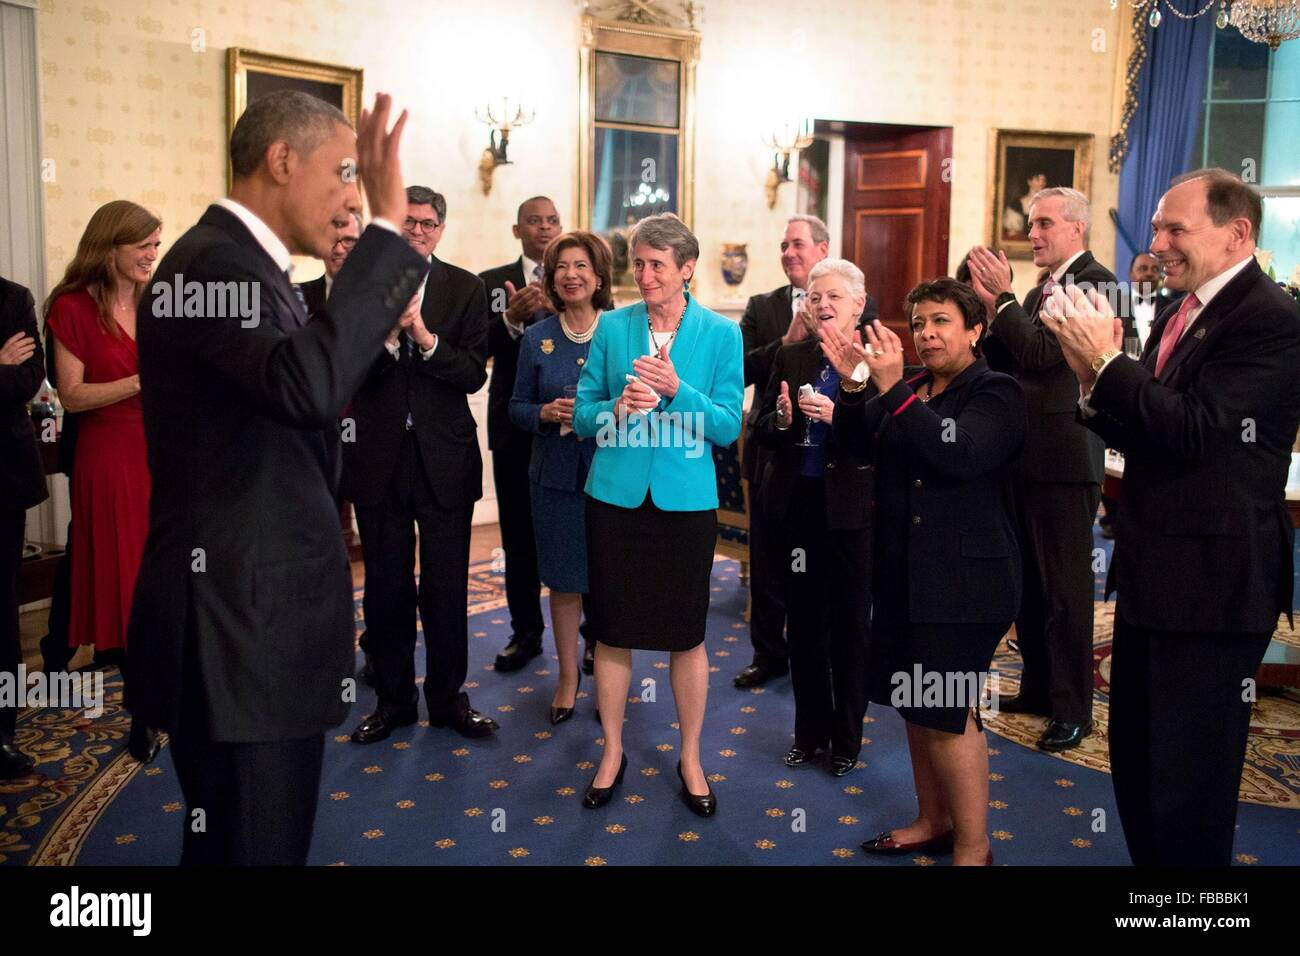 Washington DC, USA. 12th January, 2016. U.S President Barack Obama is congratulated by Cabinet members and staff - Stock Image